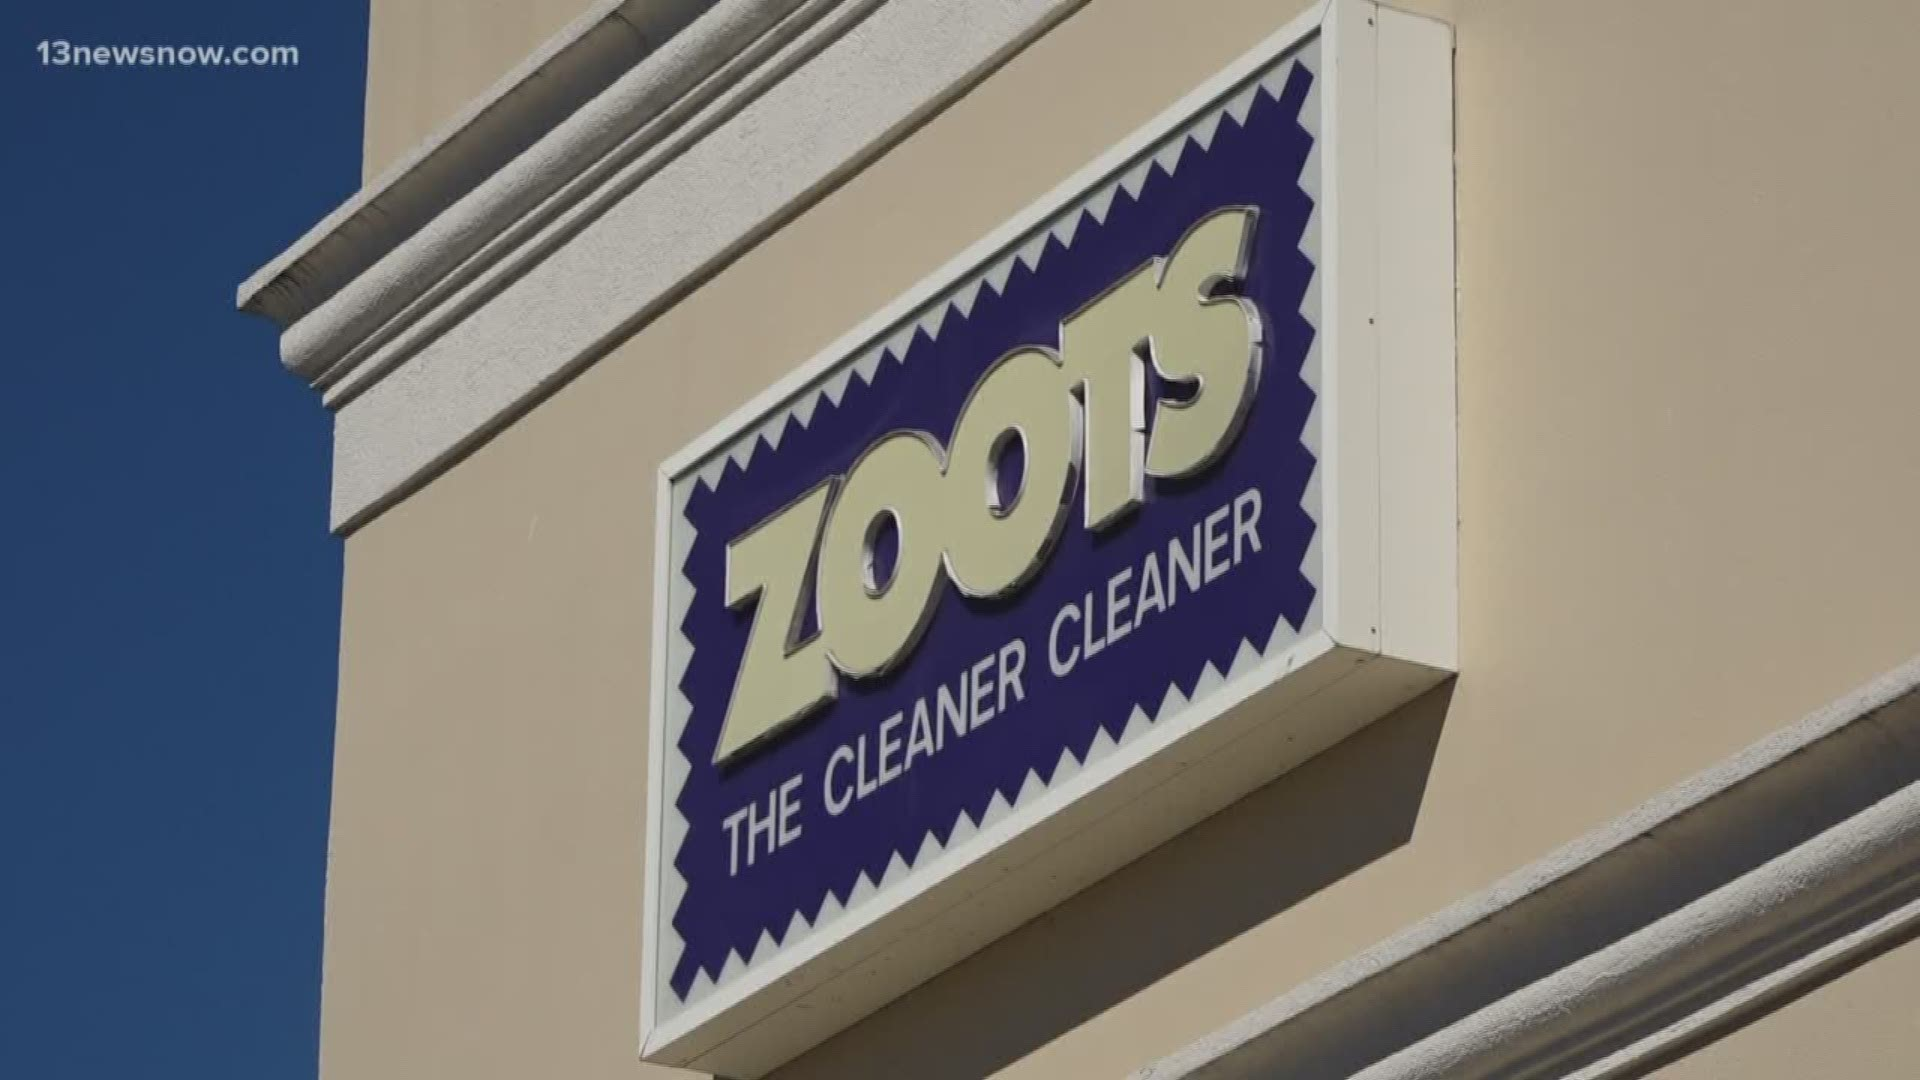 Zoots Cleaners Closes All Stores Backup Store With